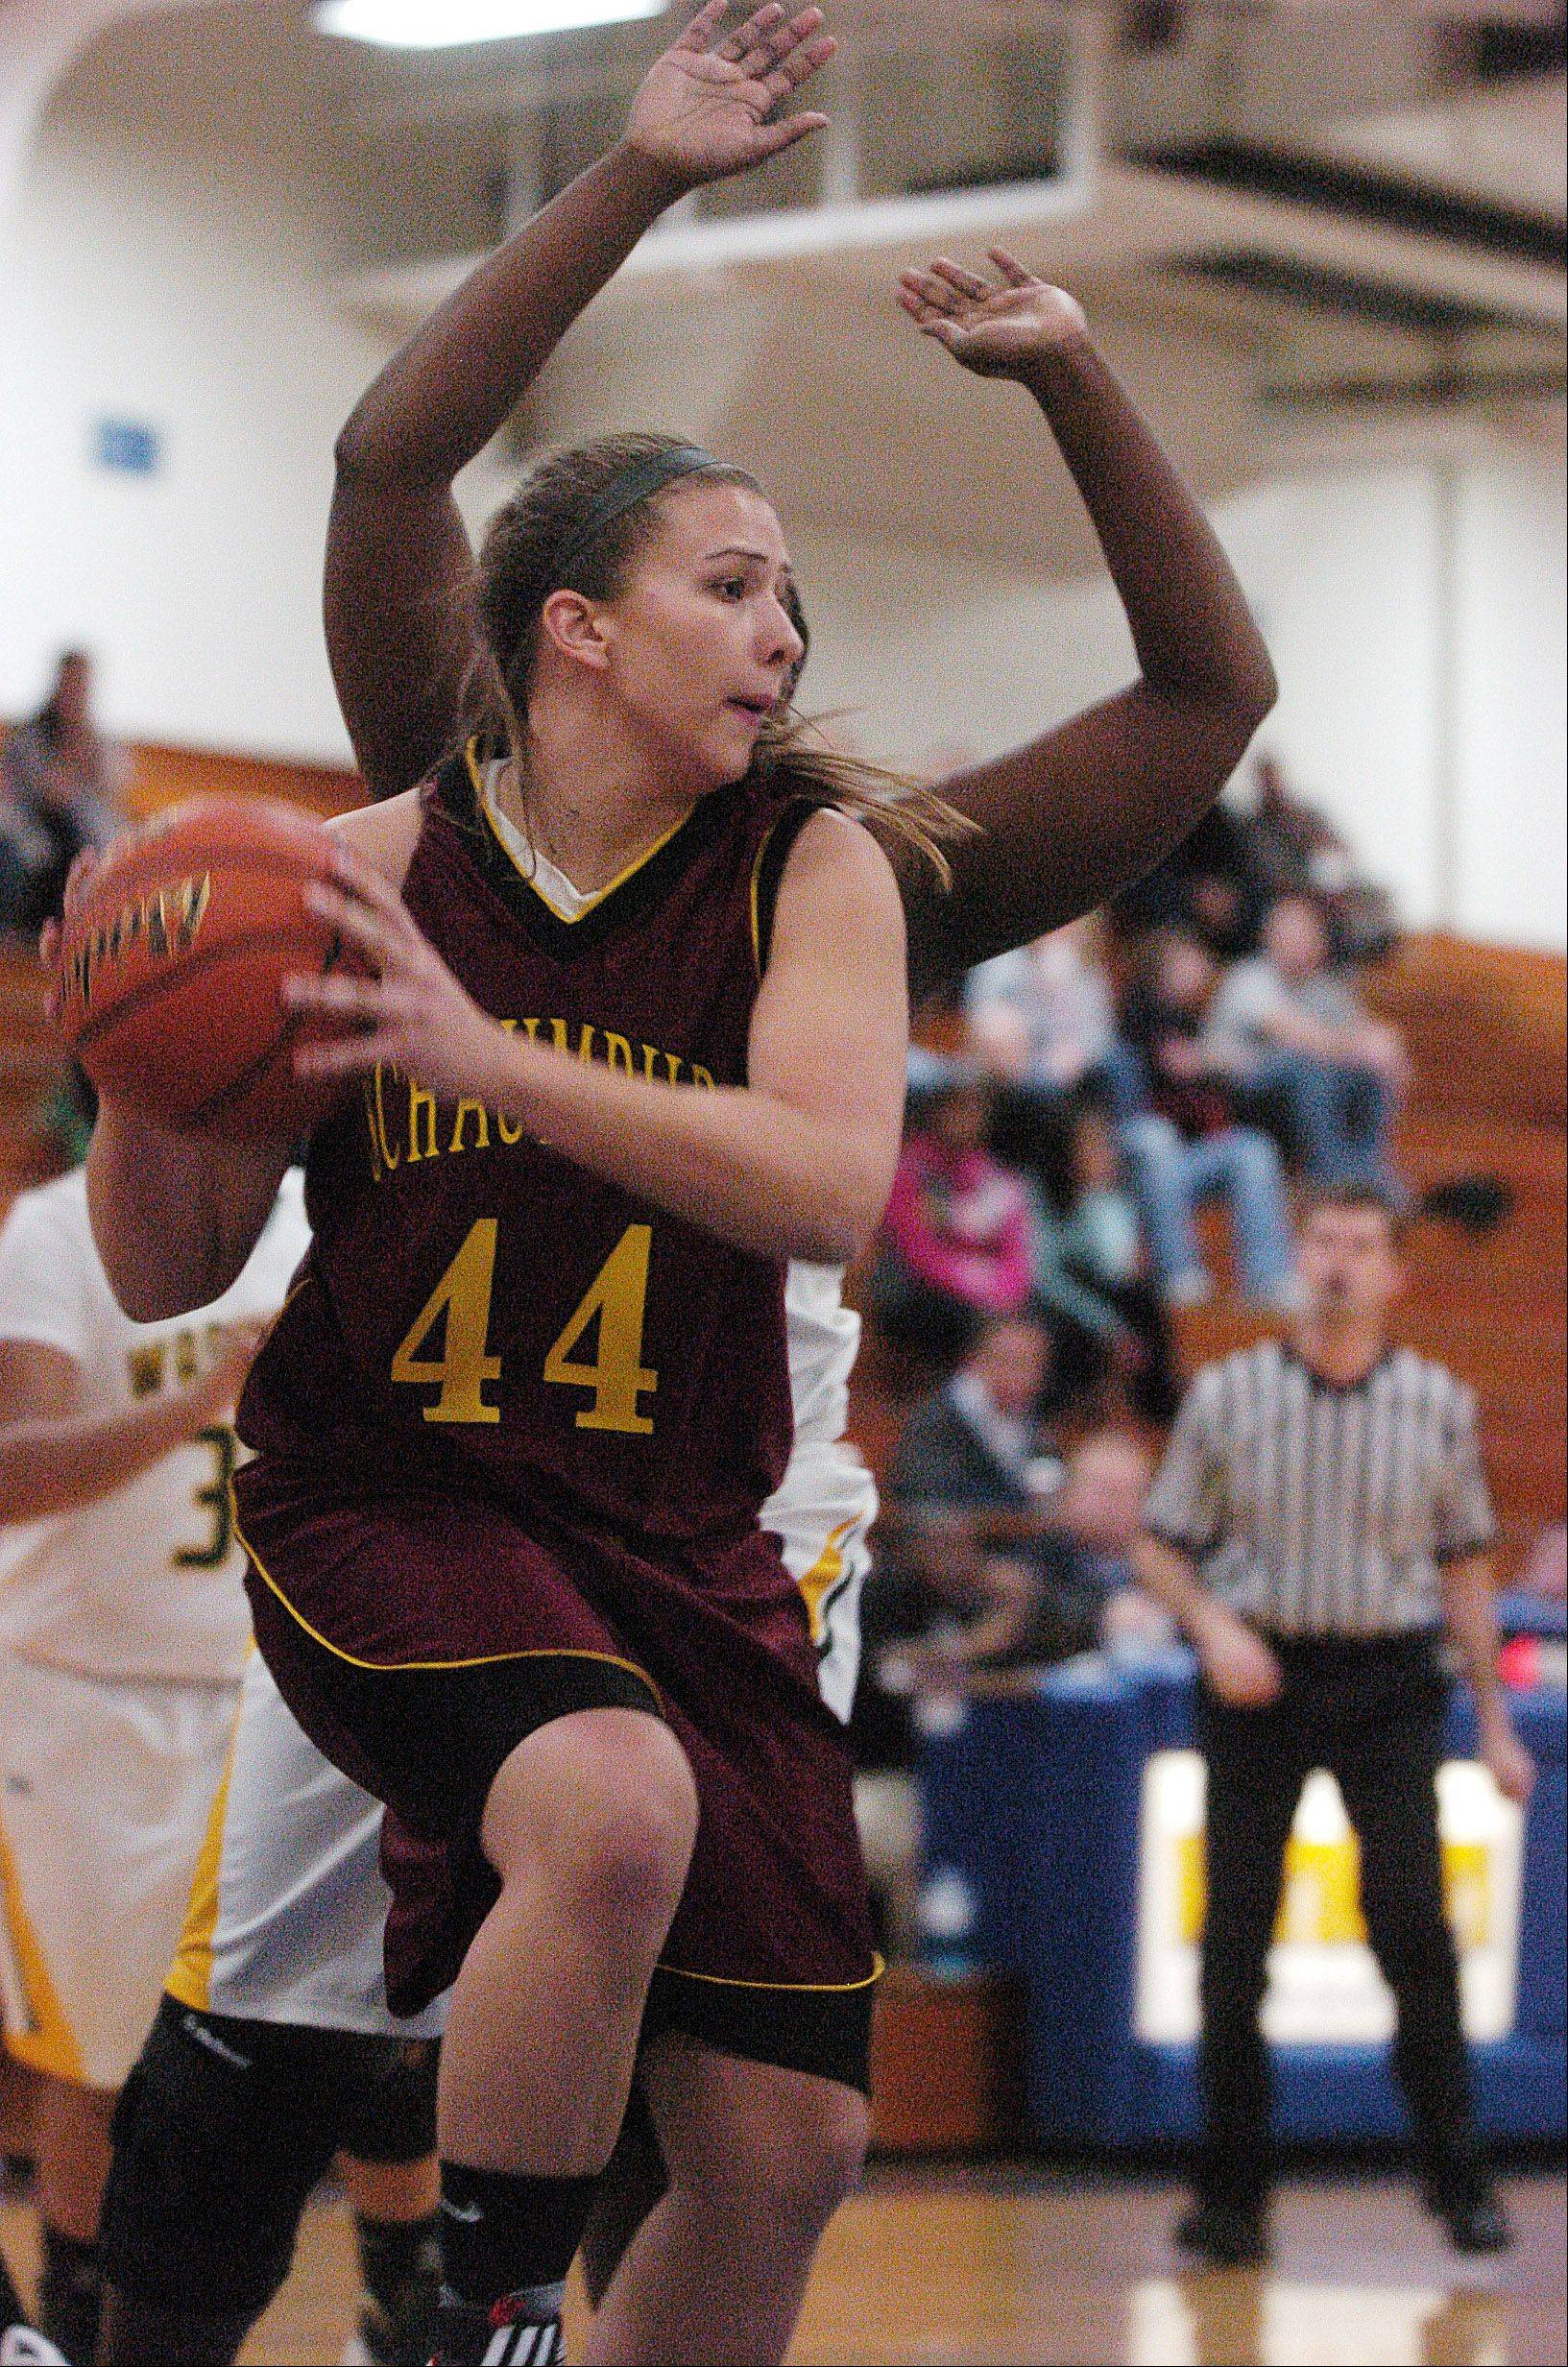 Images from the Waubonsie Valley vs. Schaumburg girls basketball game Monday, December 26, 2011.